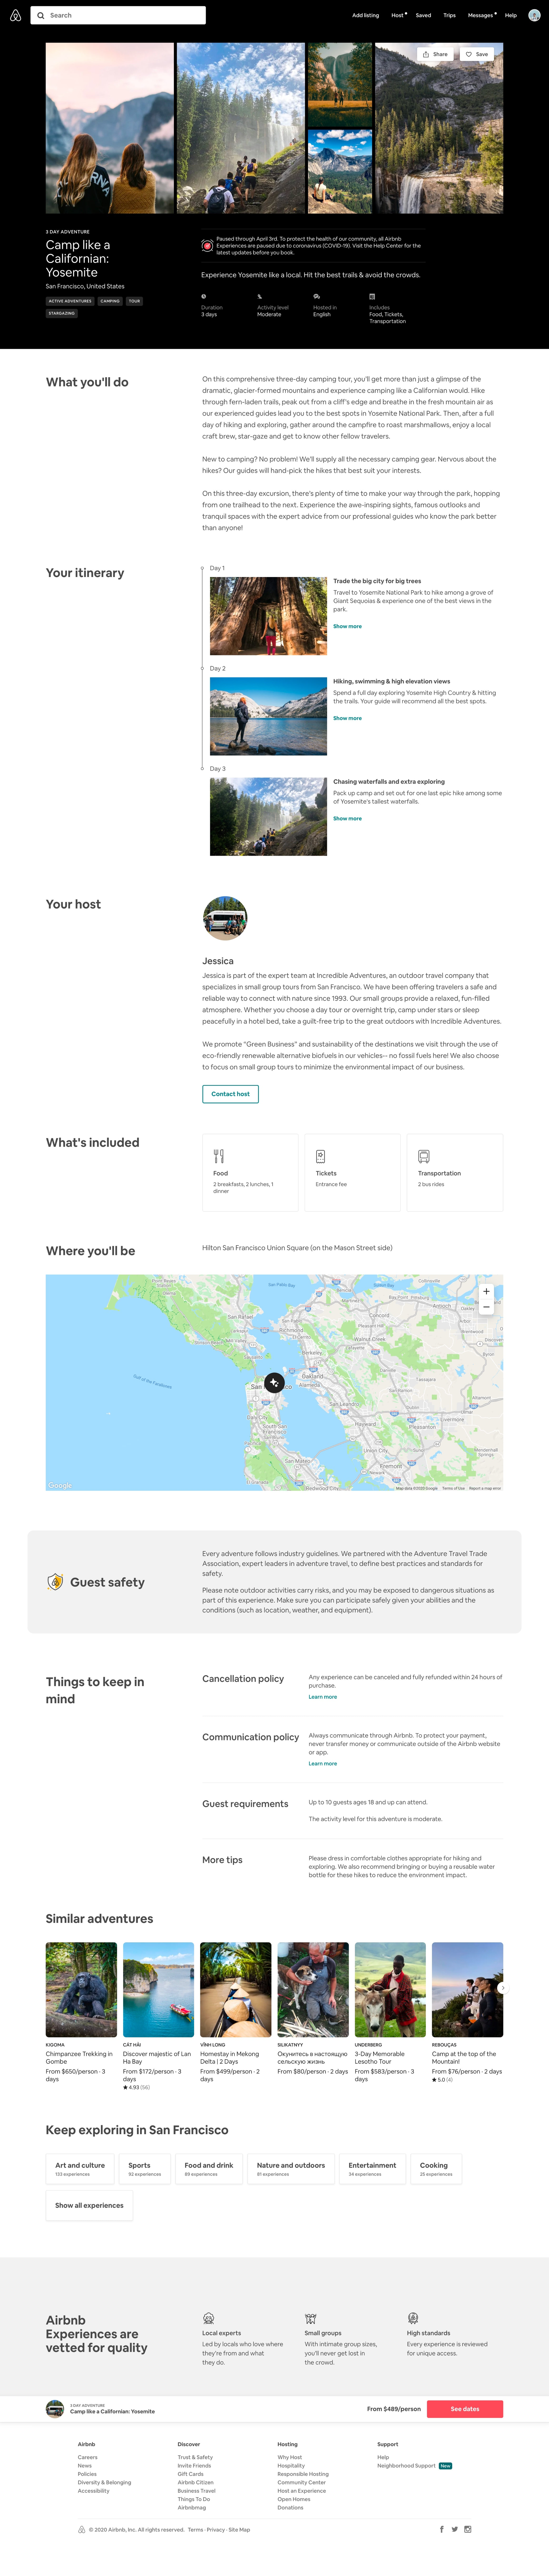 airbnb experience page